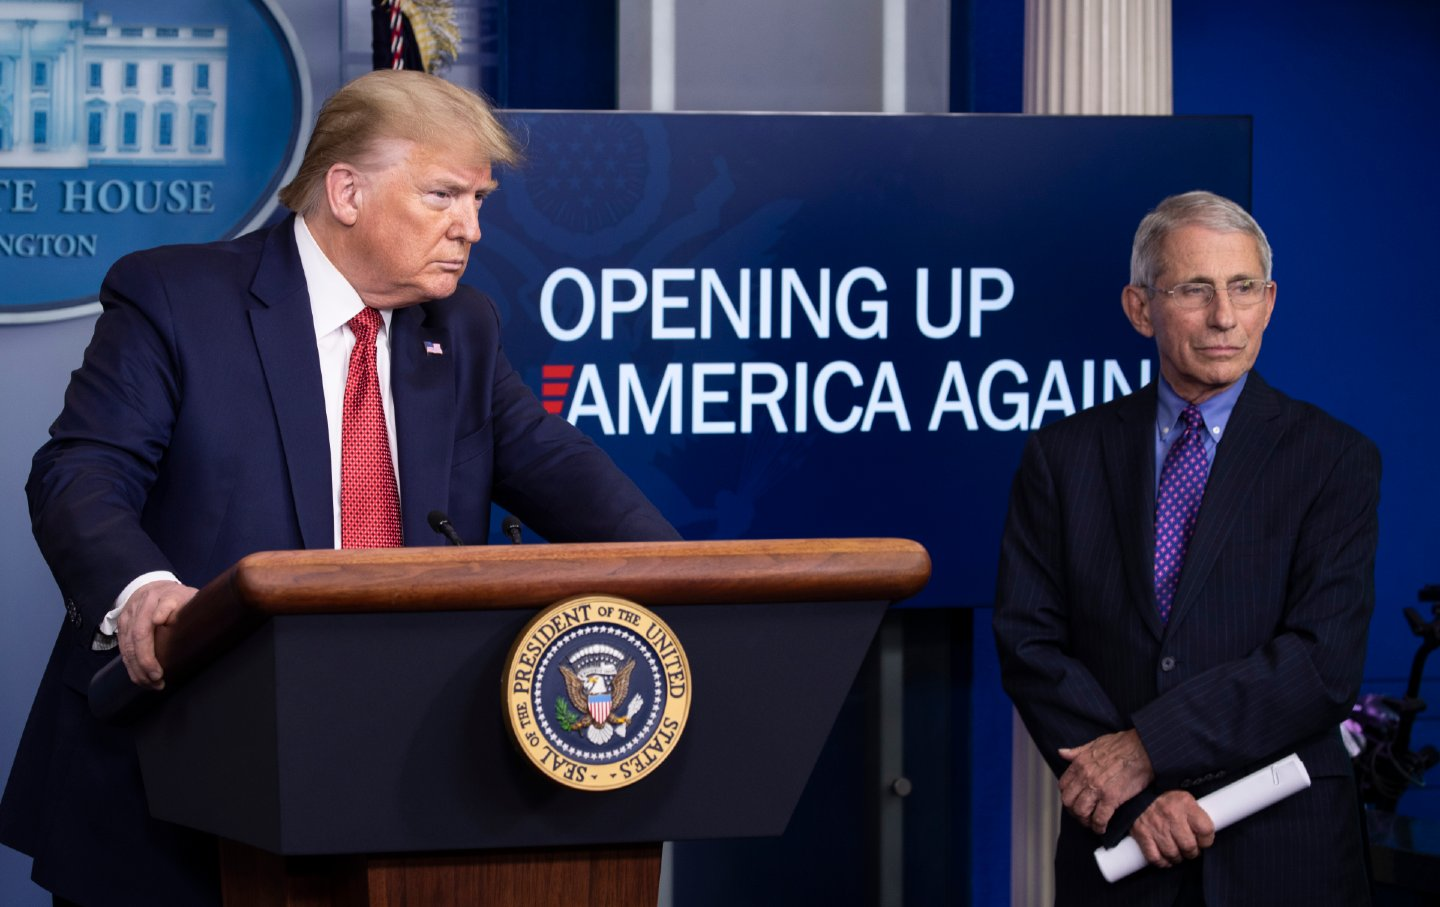 Trump and Fauci